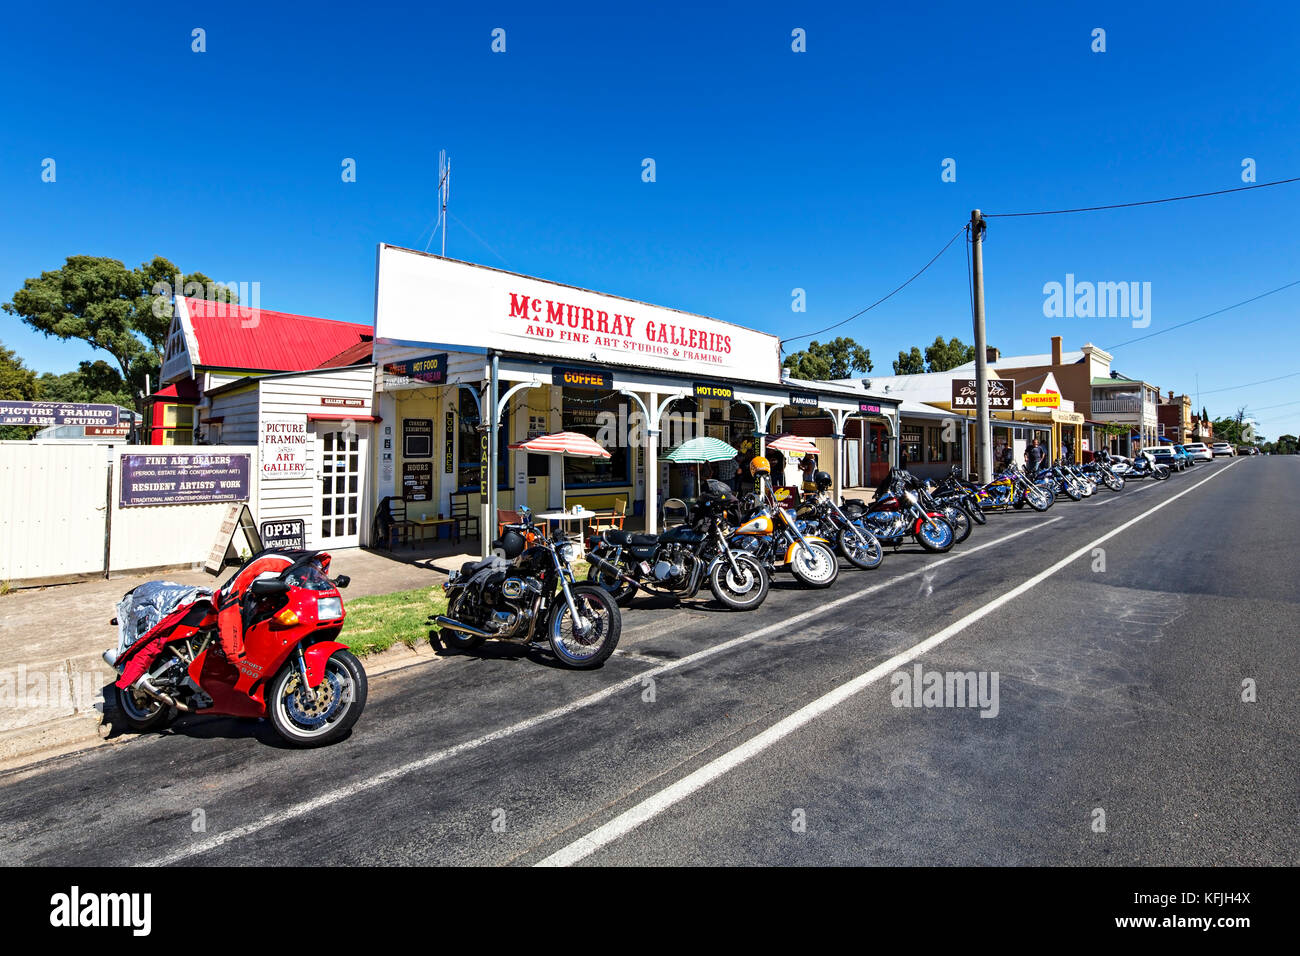 motorcycles outside a restaurant stock photos motorcycles outside a restaurant stock images. Black Bedroom Furniture Sets. Home Design Ideas